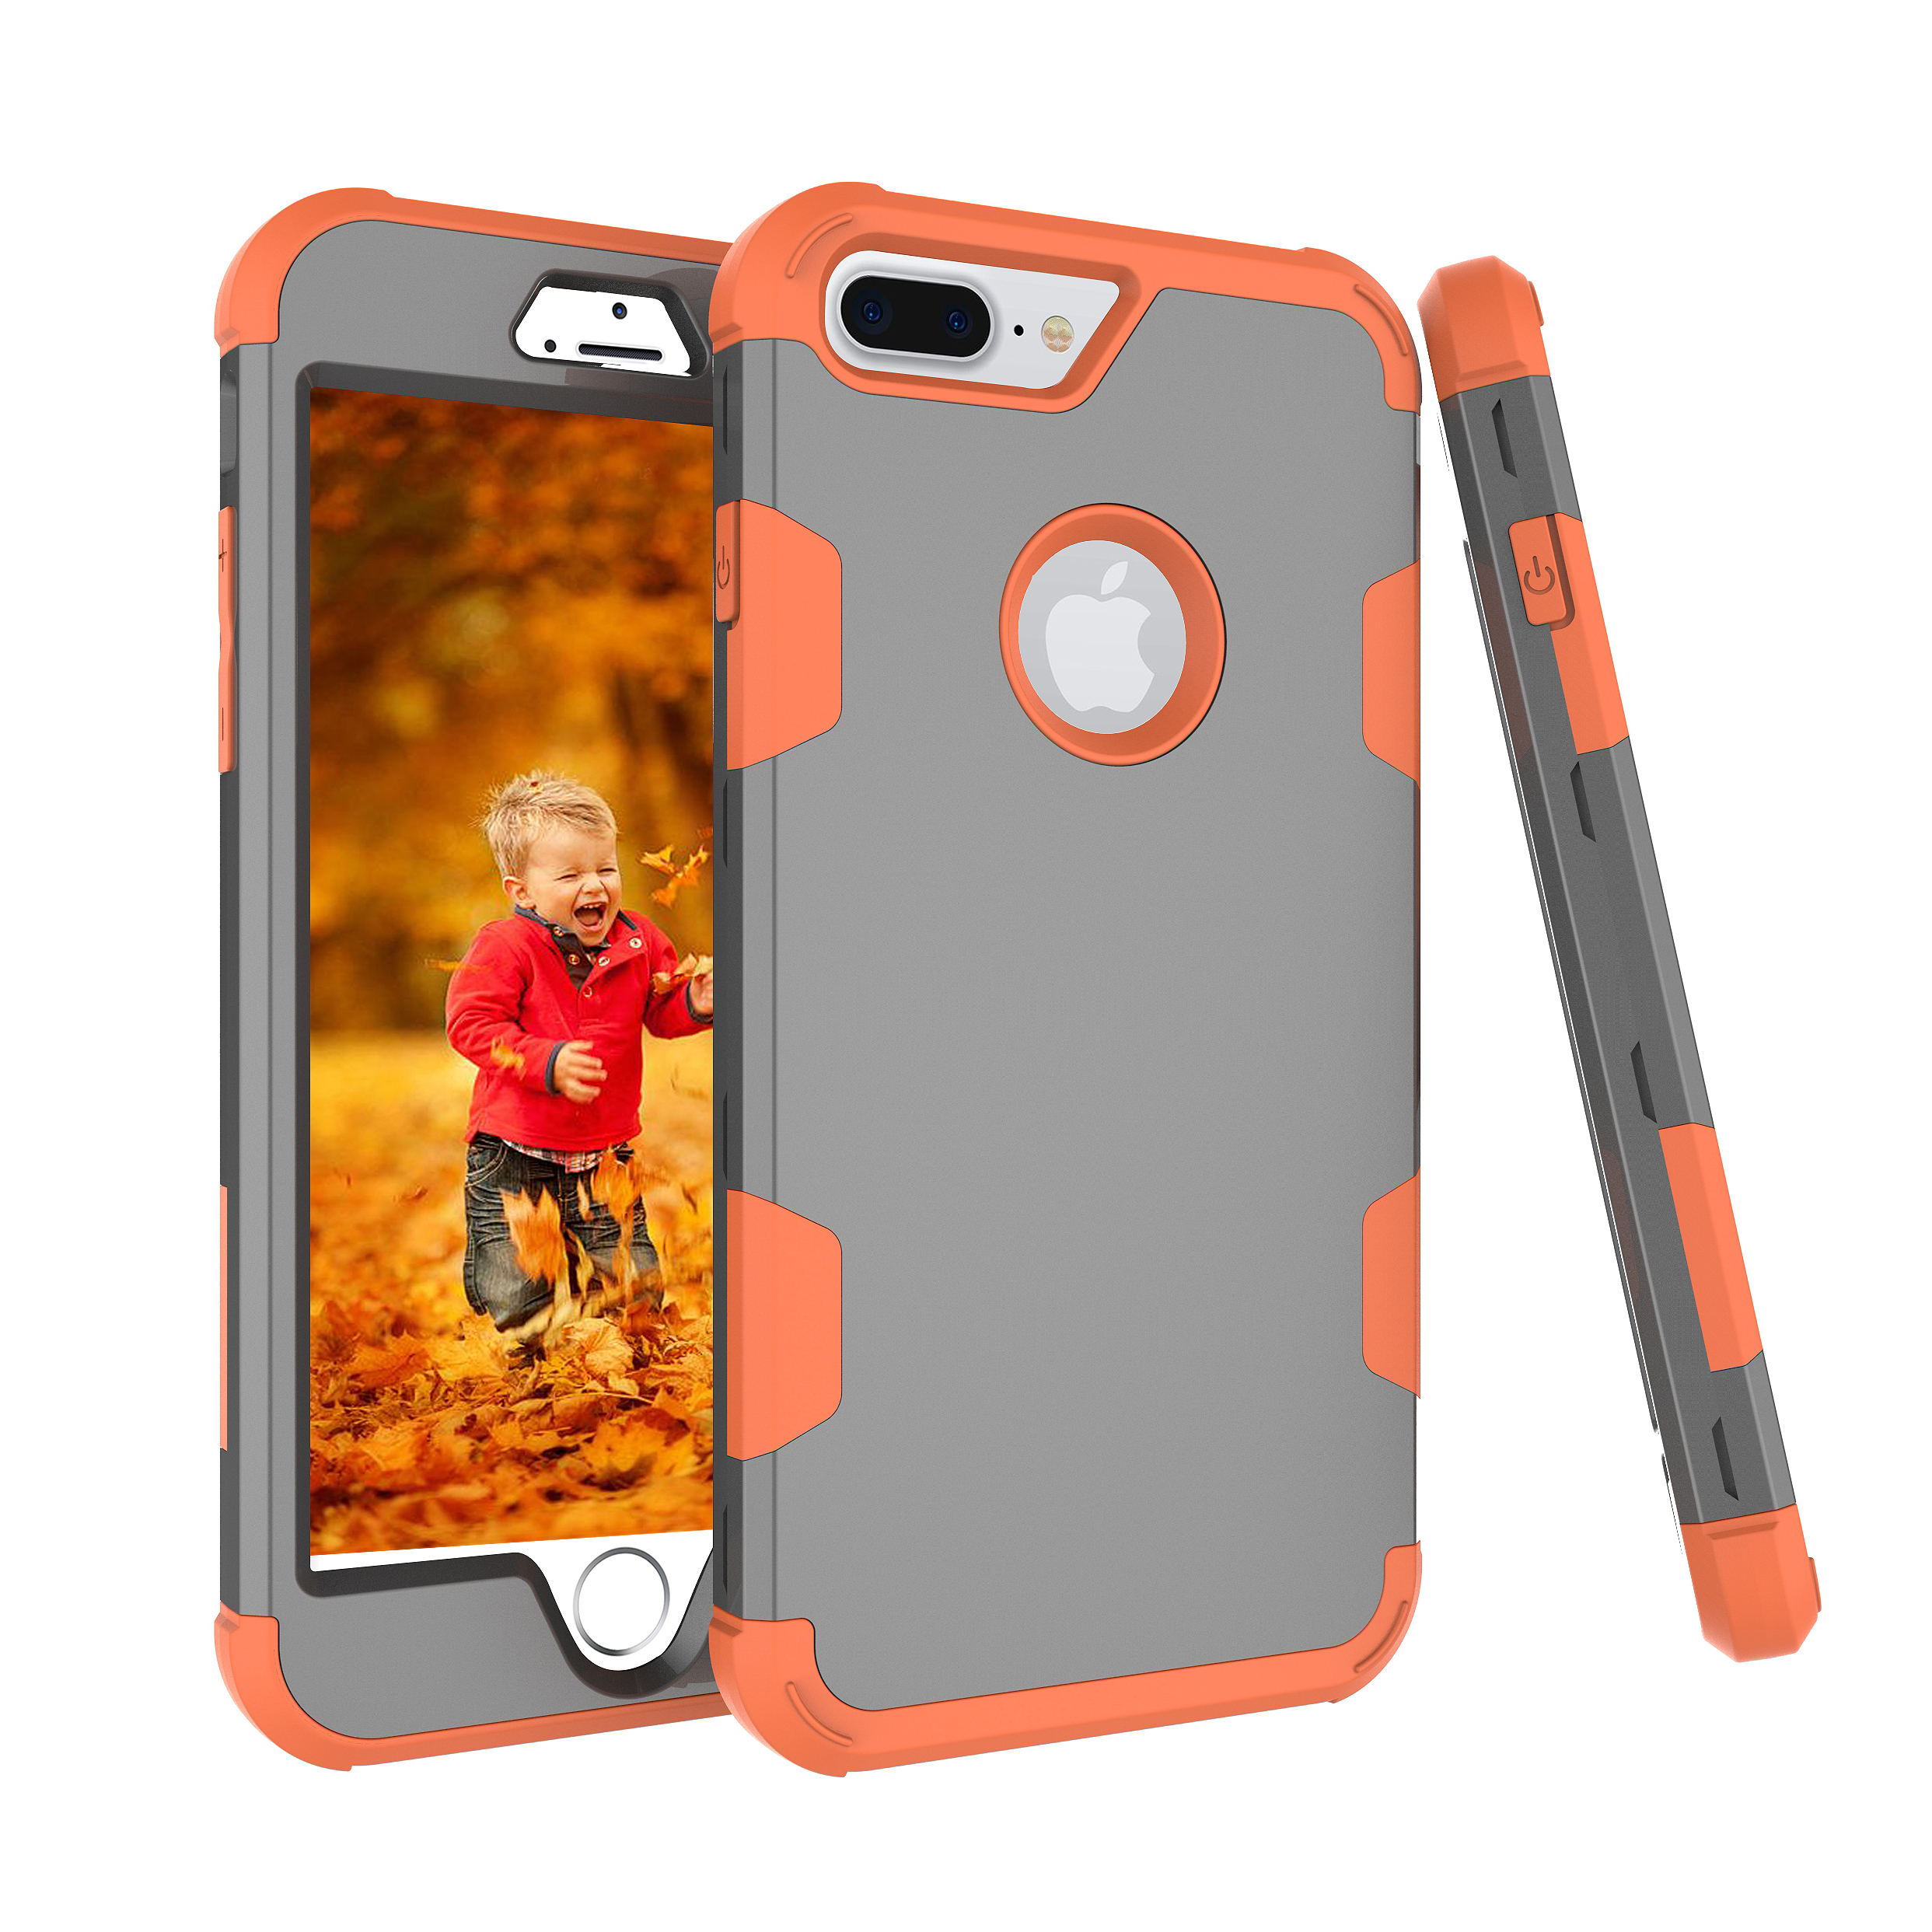 For iPhone 7 plus PC+ Silicone 2 in 1 Hit Color Tri-proof Shockproof Dustproof Anti-fall Protective Cover Back Case Gray + orange